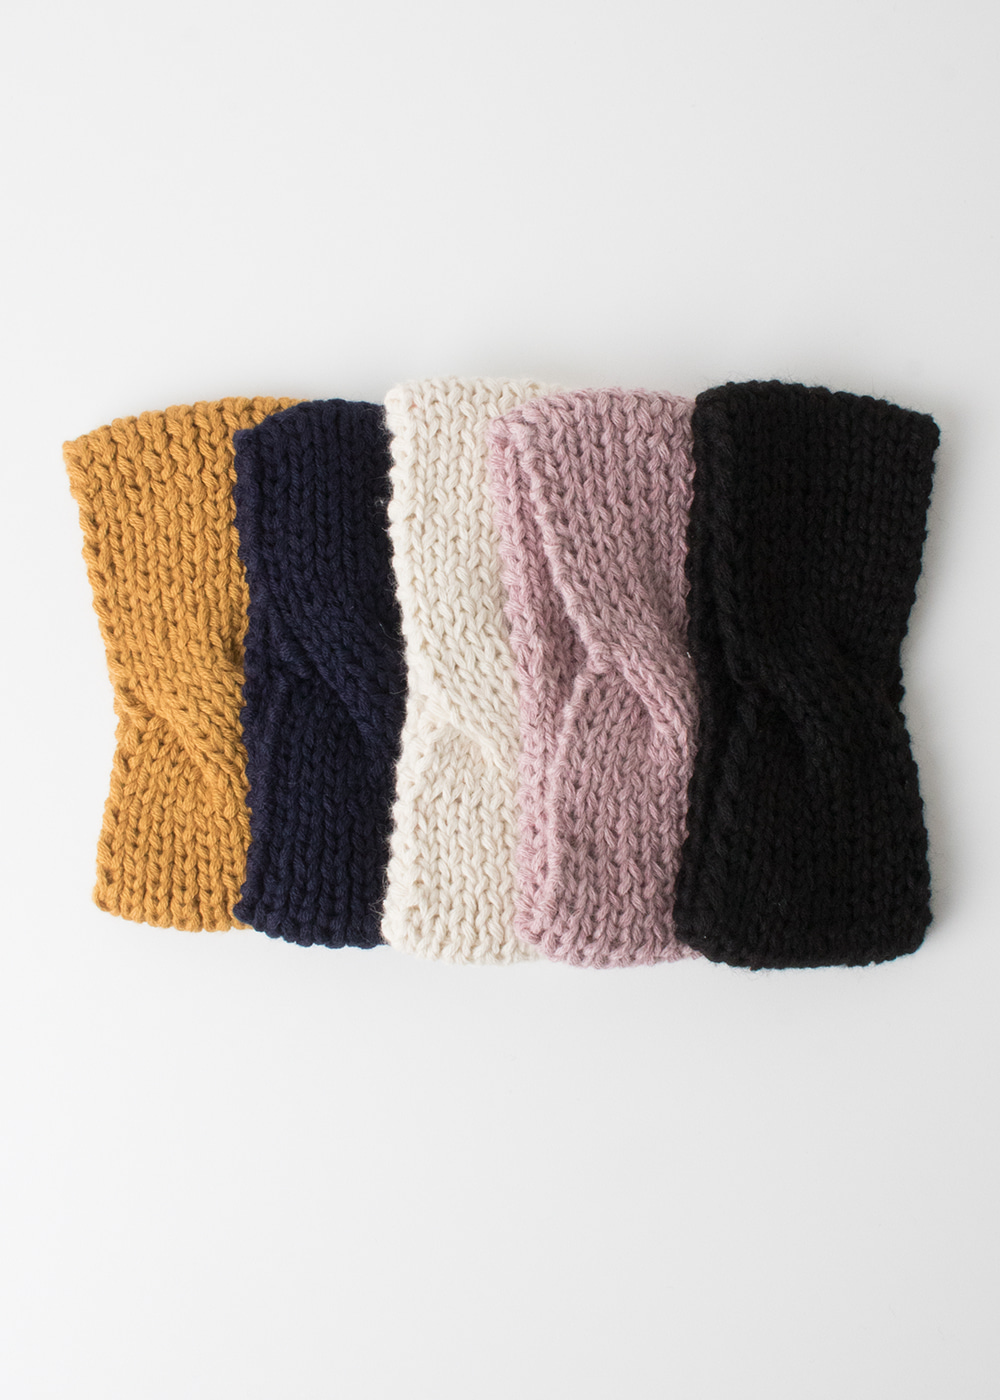 Knitted Headband - 5 colors